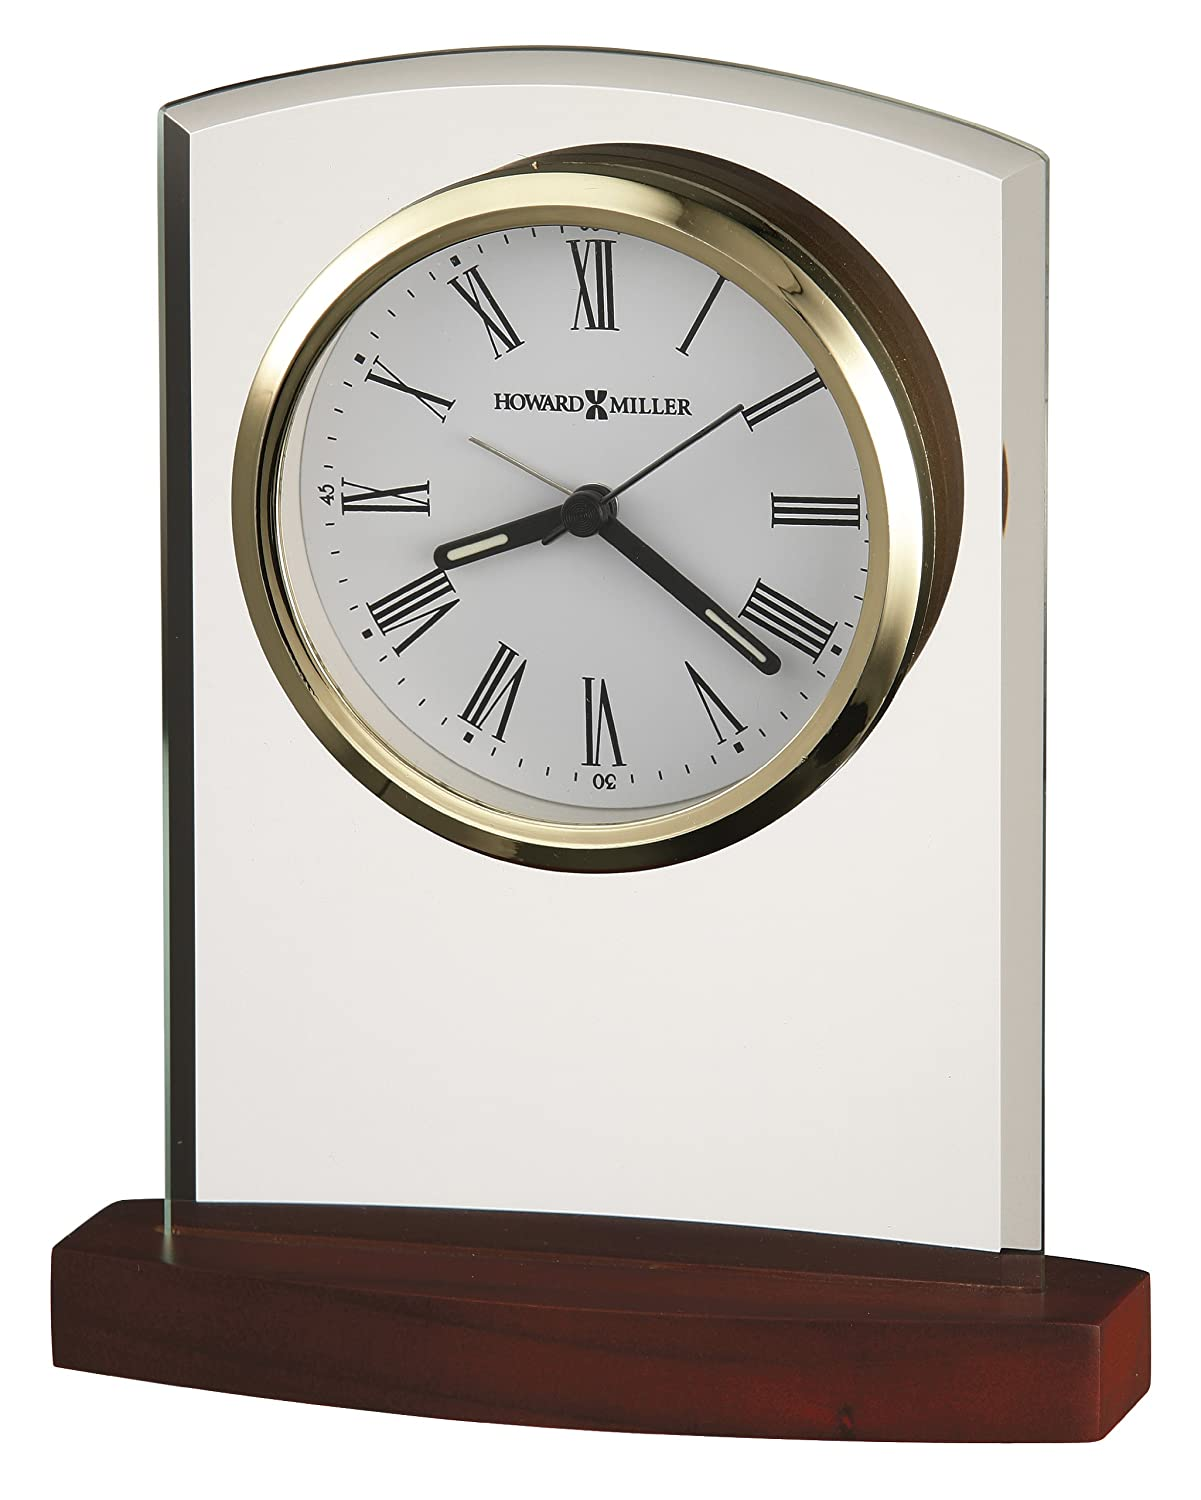 Amazon.com: Howard Miller 645 580 Marcus Table Clock By: Home U0026 Kitchen